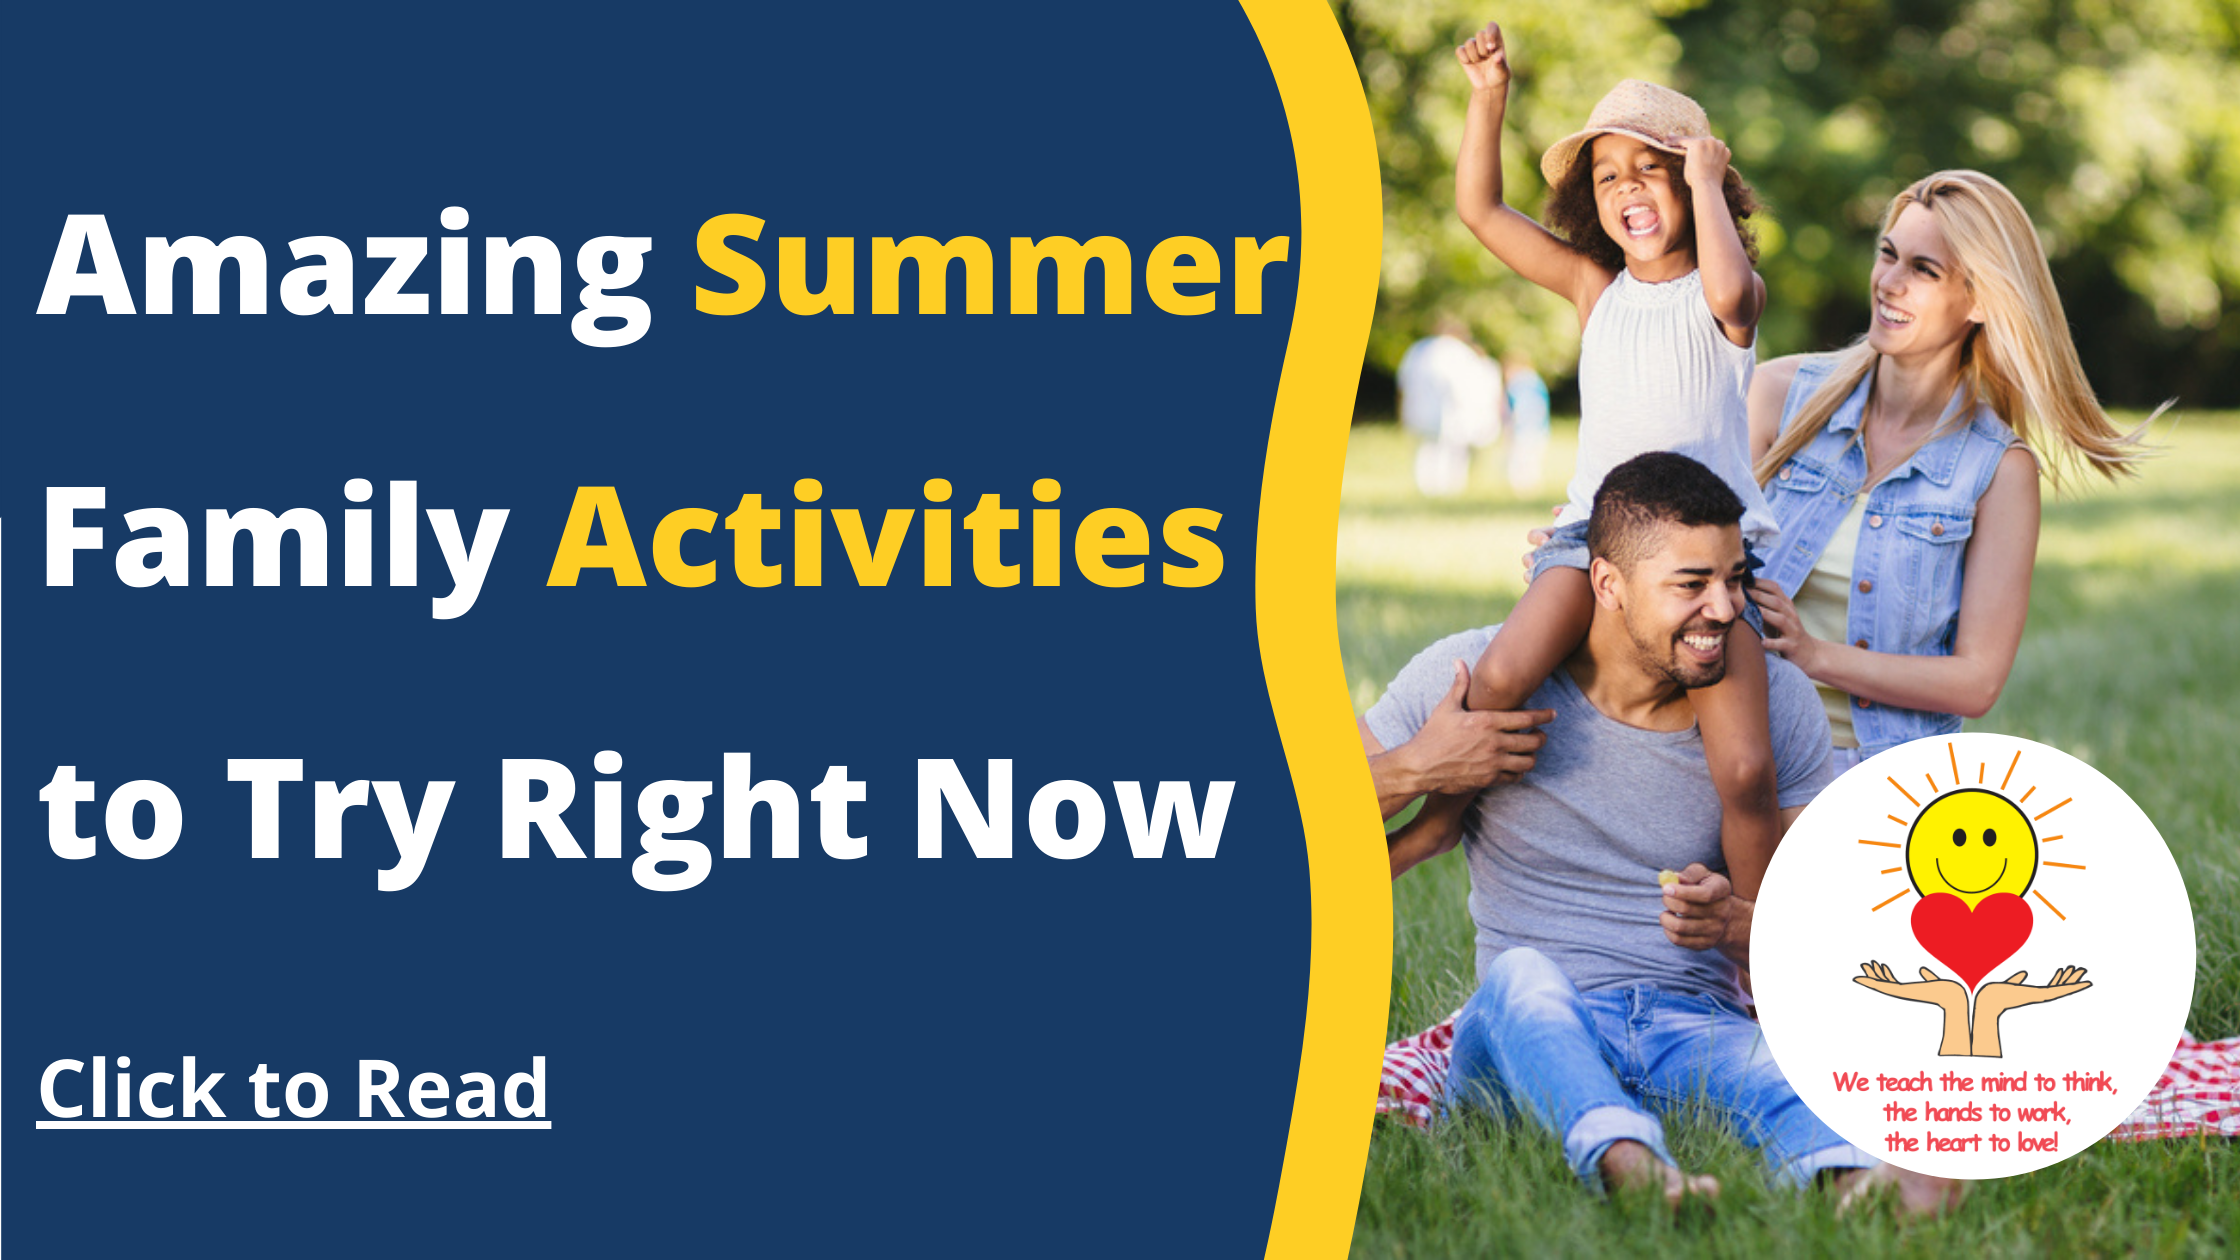 Amazing Summer Family Activities to Try Right Now